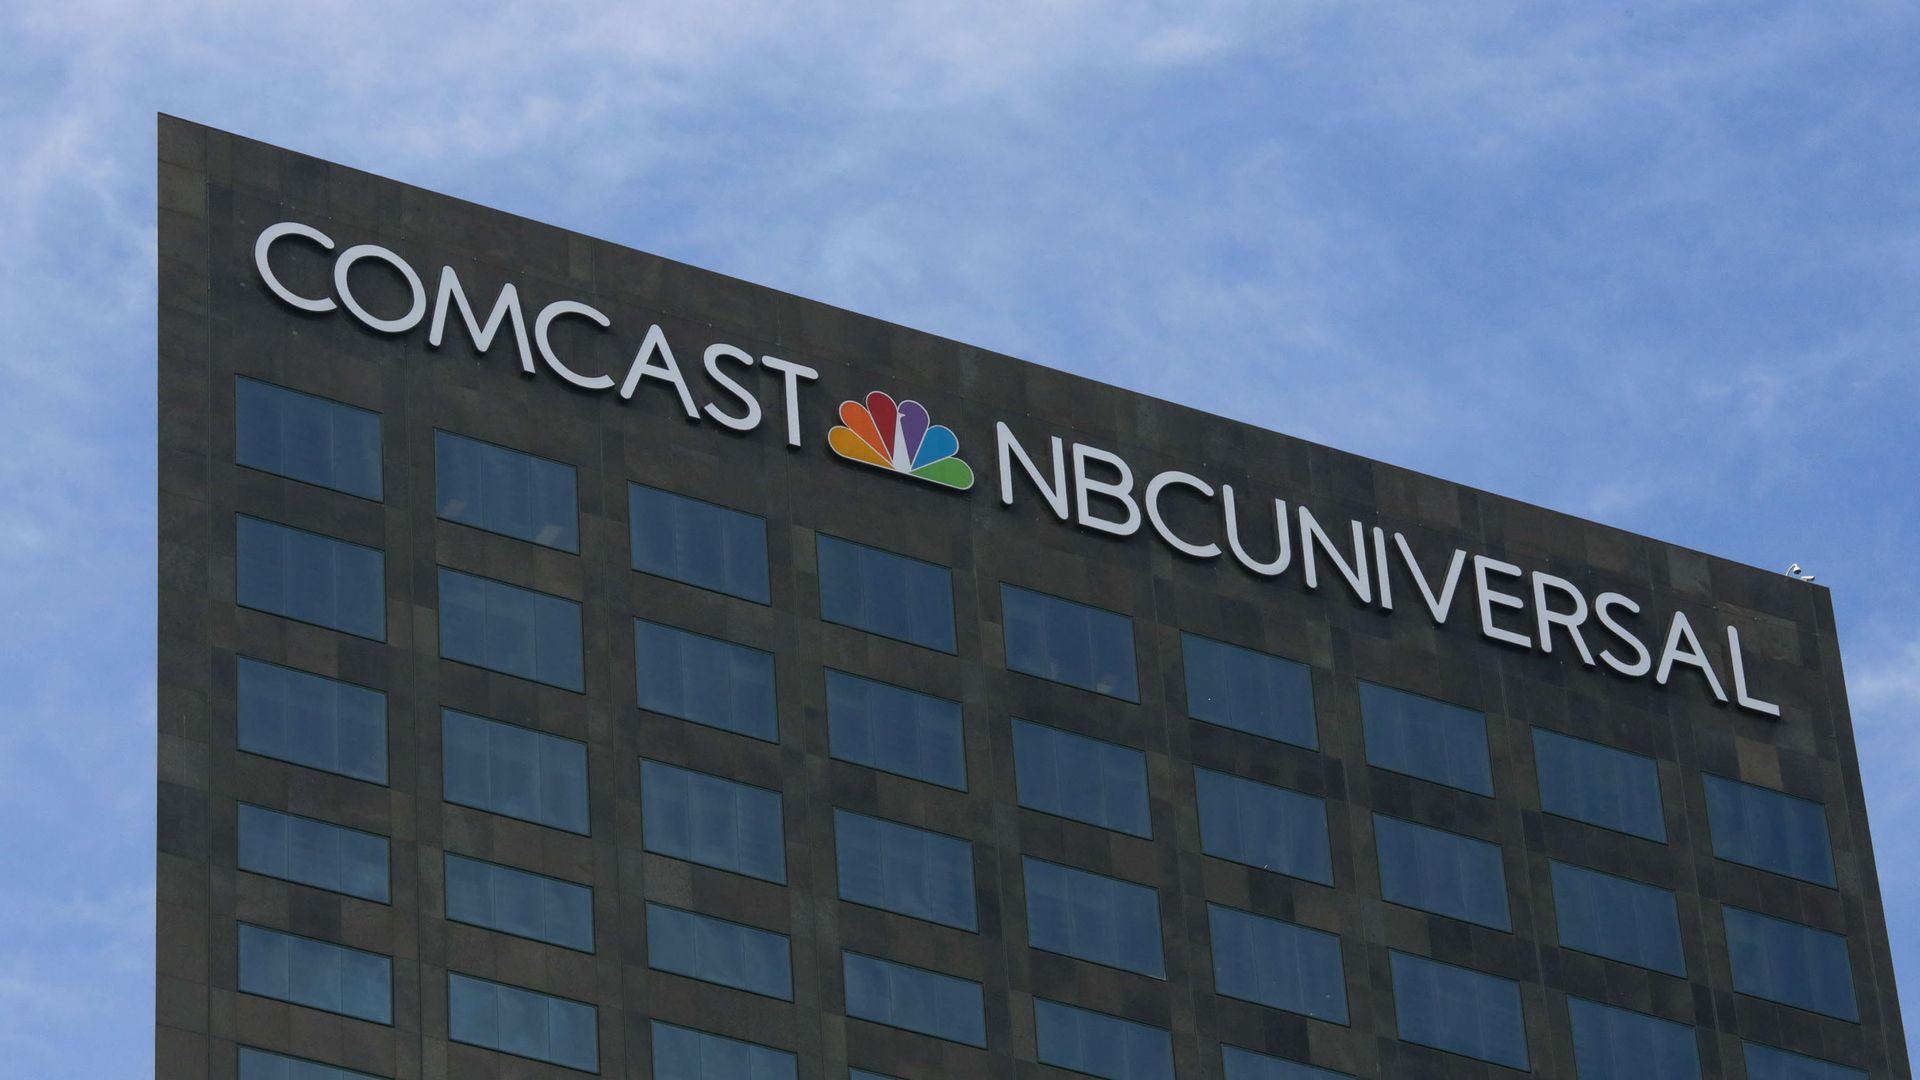 Comcast-NBC merger conditions expire, raising anti-competitive fears